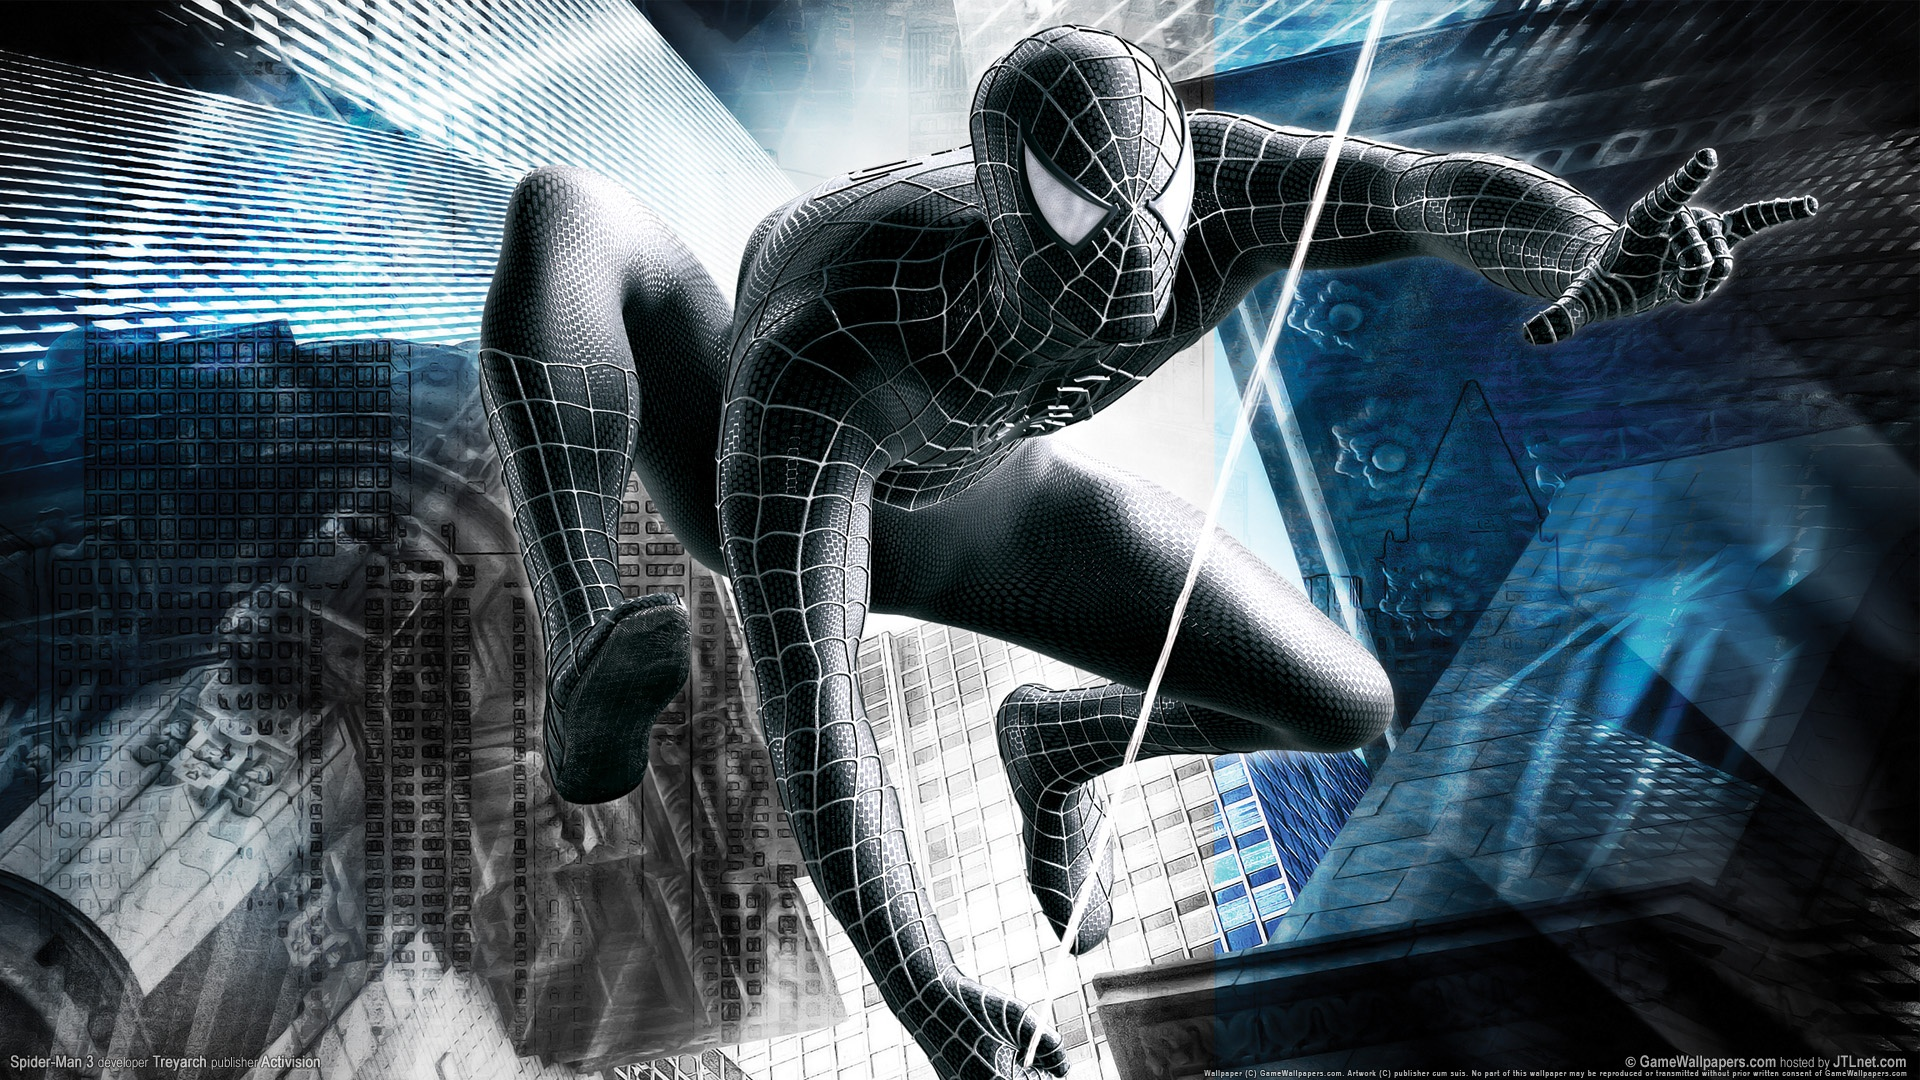 Spider Man 3 HD Wallpapers HD Wallpapers 1920x1080